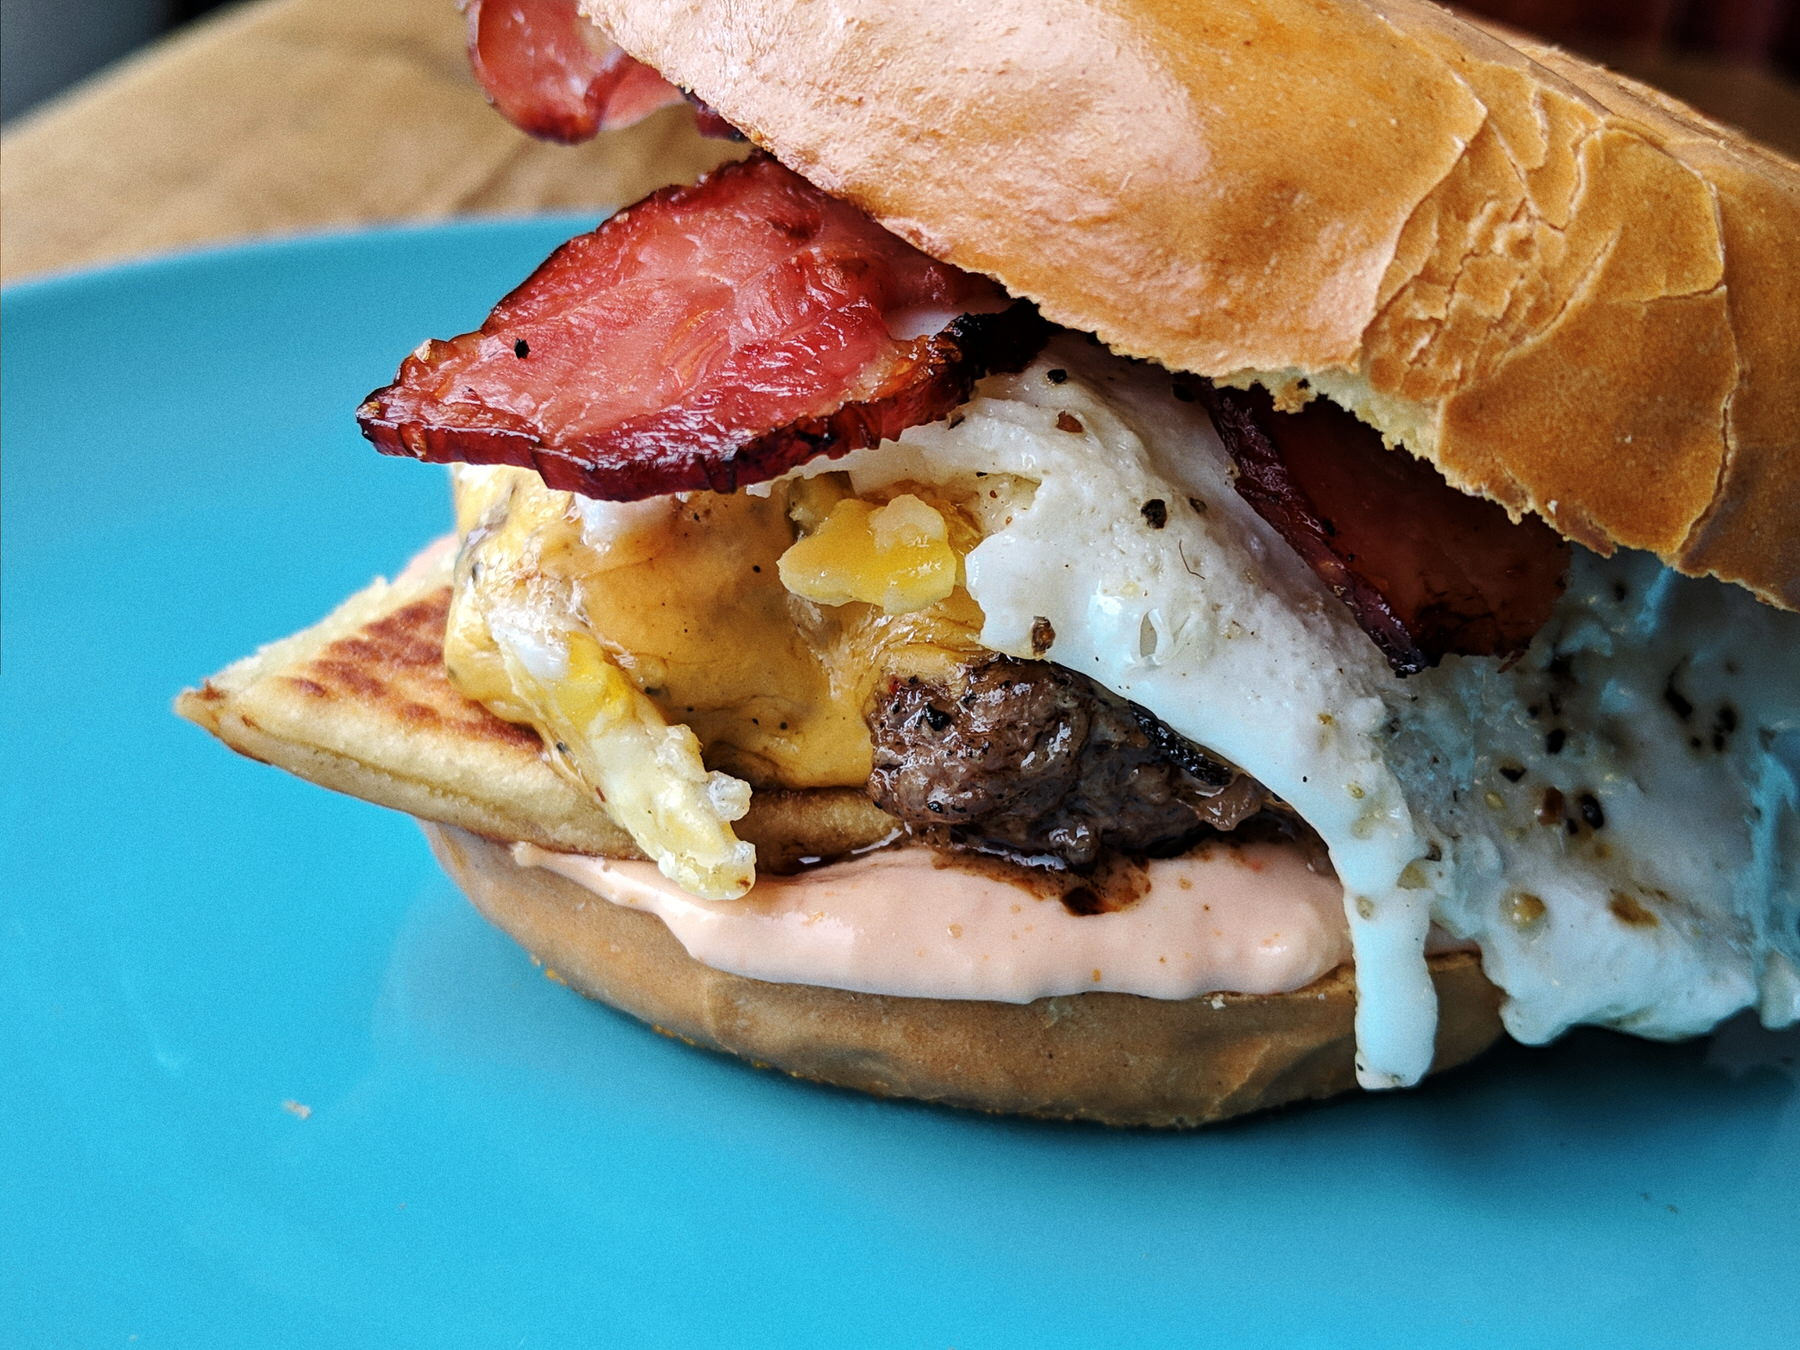 Our new Brunch Burger: cheeseburger, potato scone, fried egg and bacon on a bagel bun.